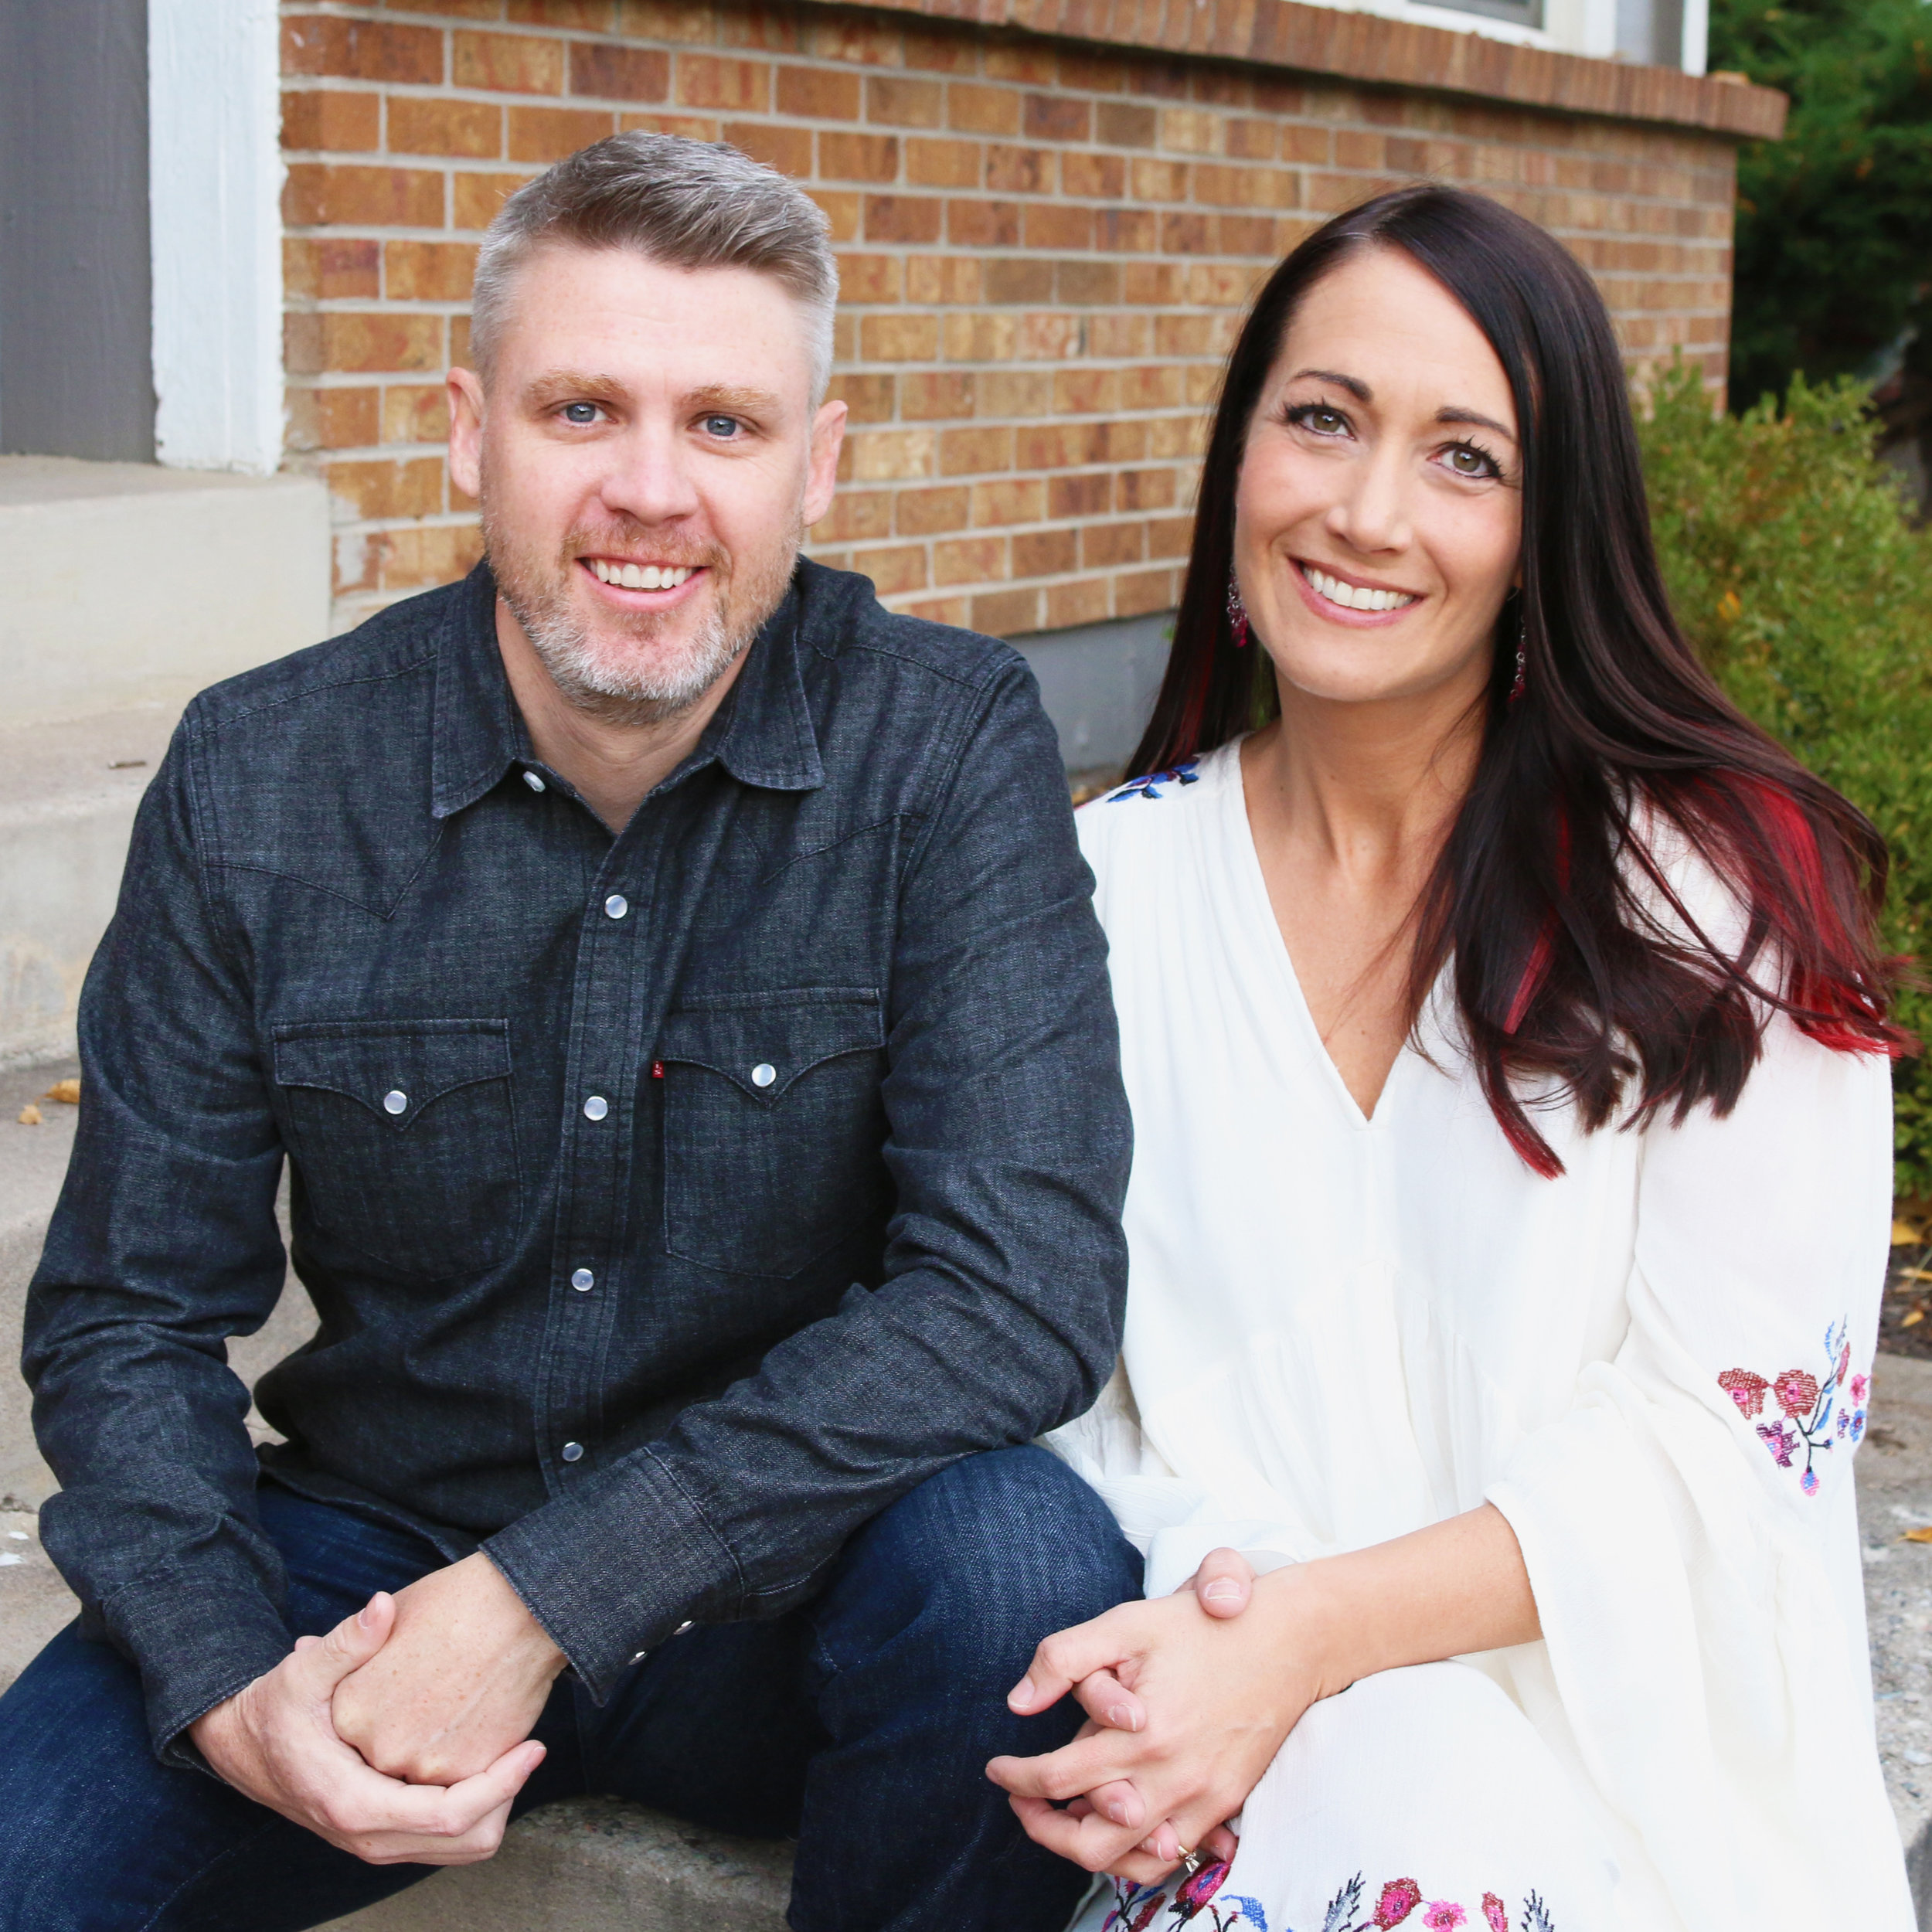 Derek and Gina Gilbert are Willow Creek's neighborhood realtors!